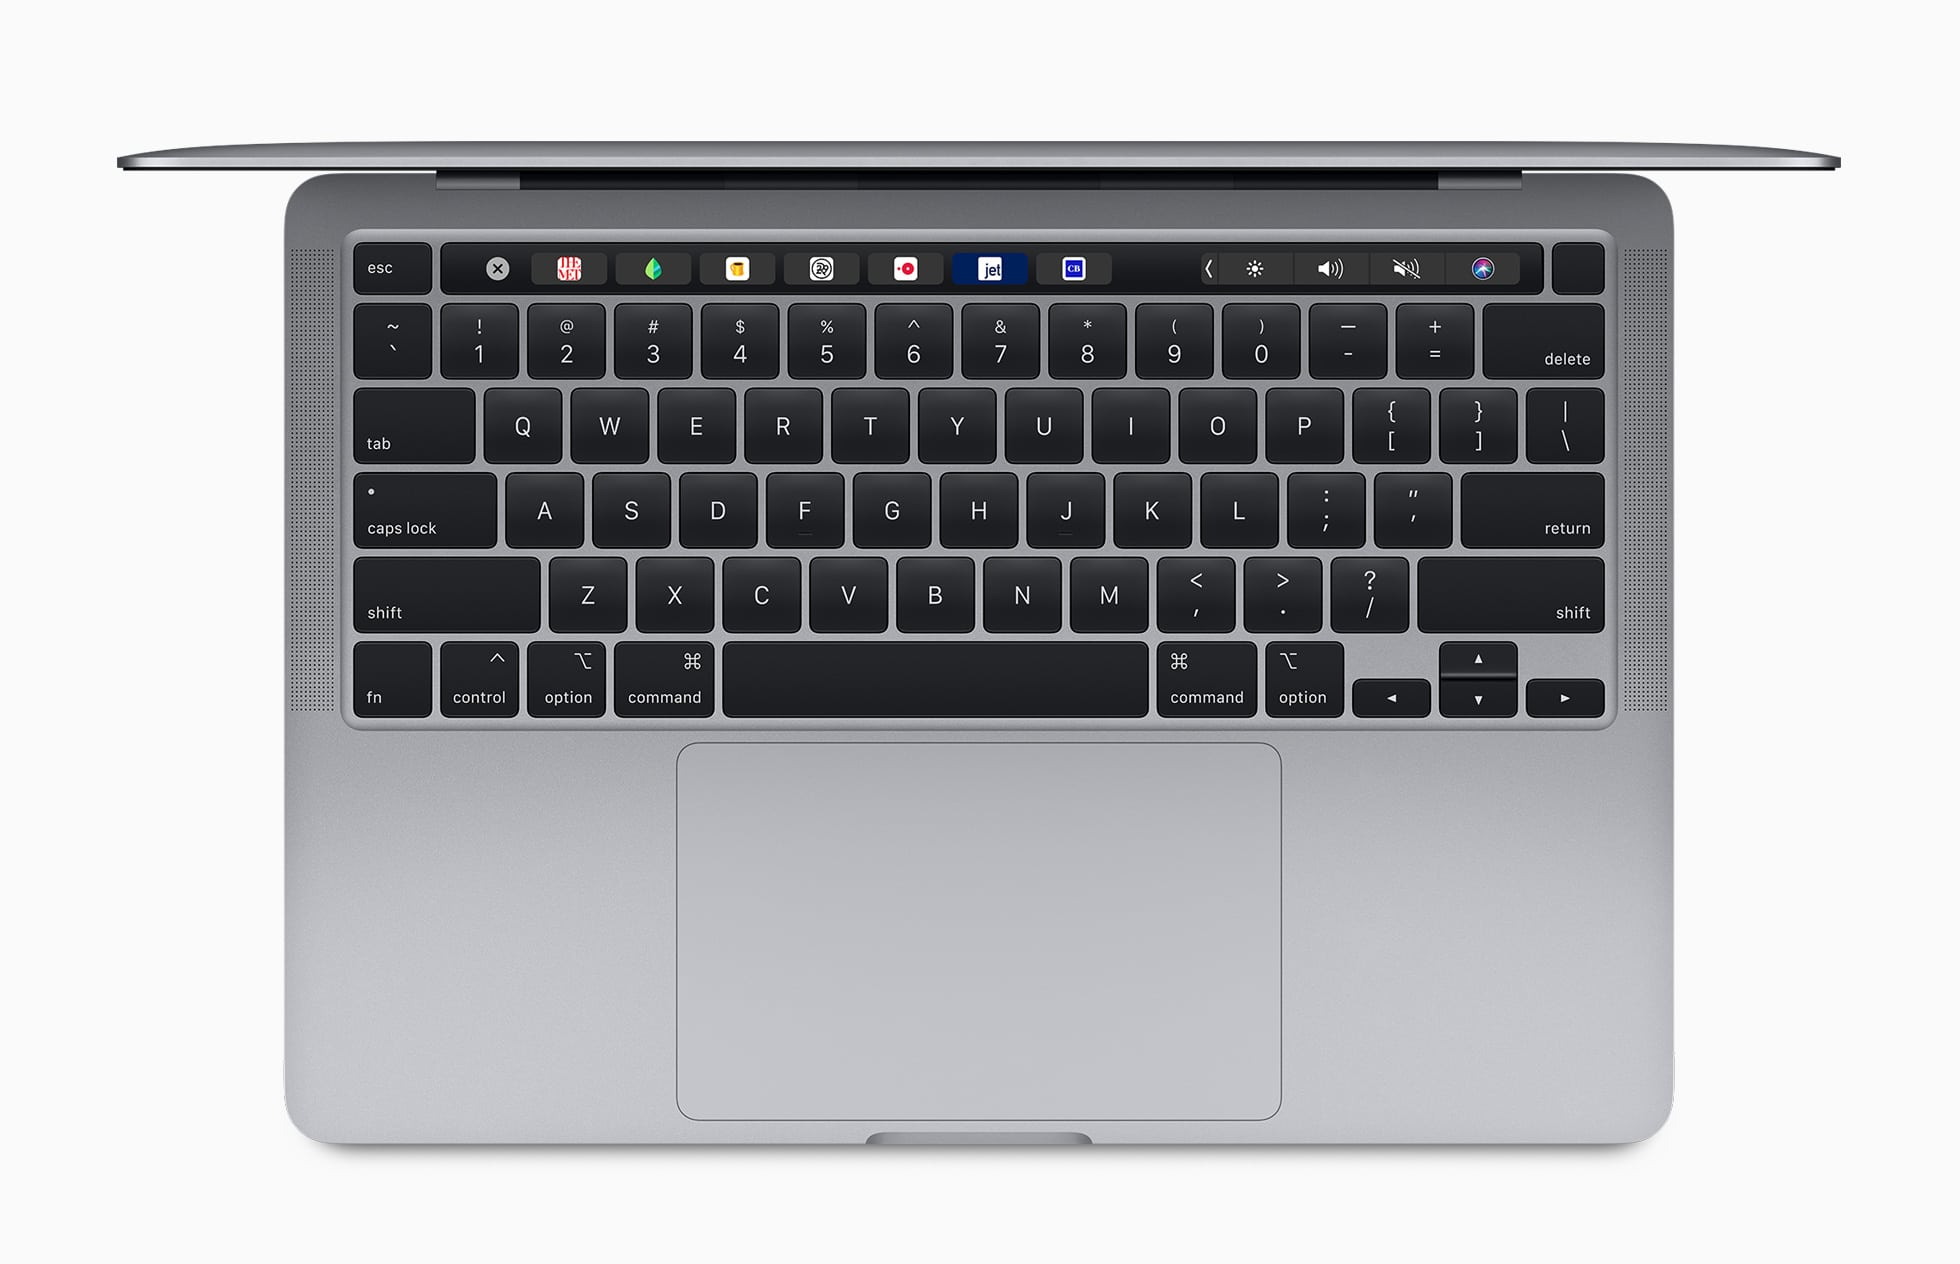 Magic Keyboard do novo MacBook Pro de 13 polegadas visto de cima